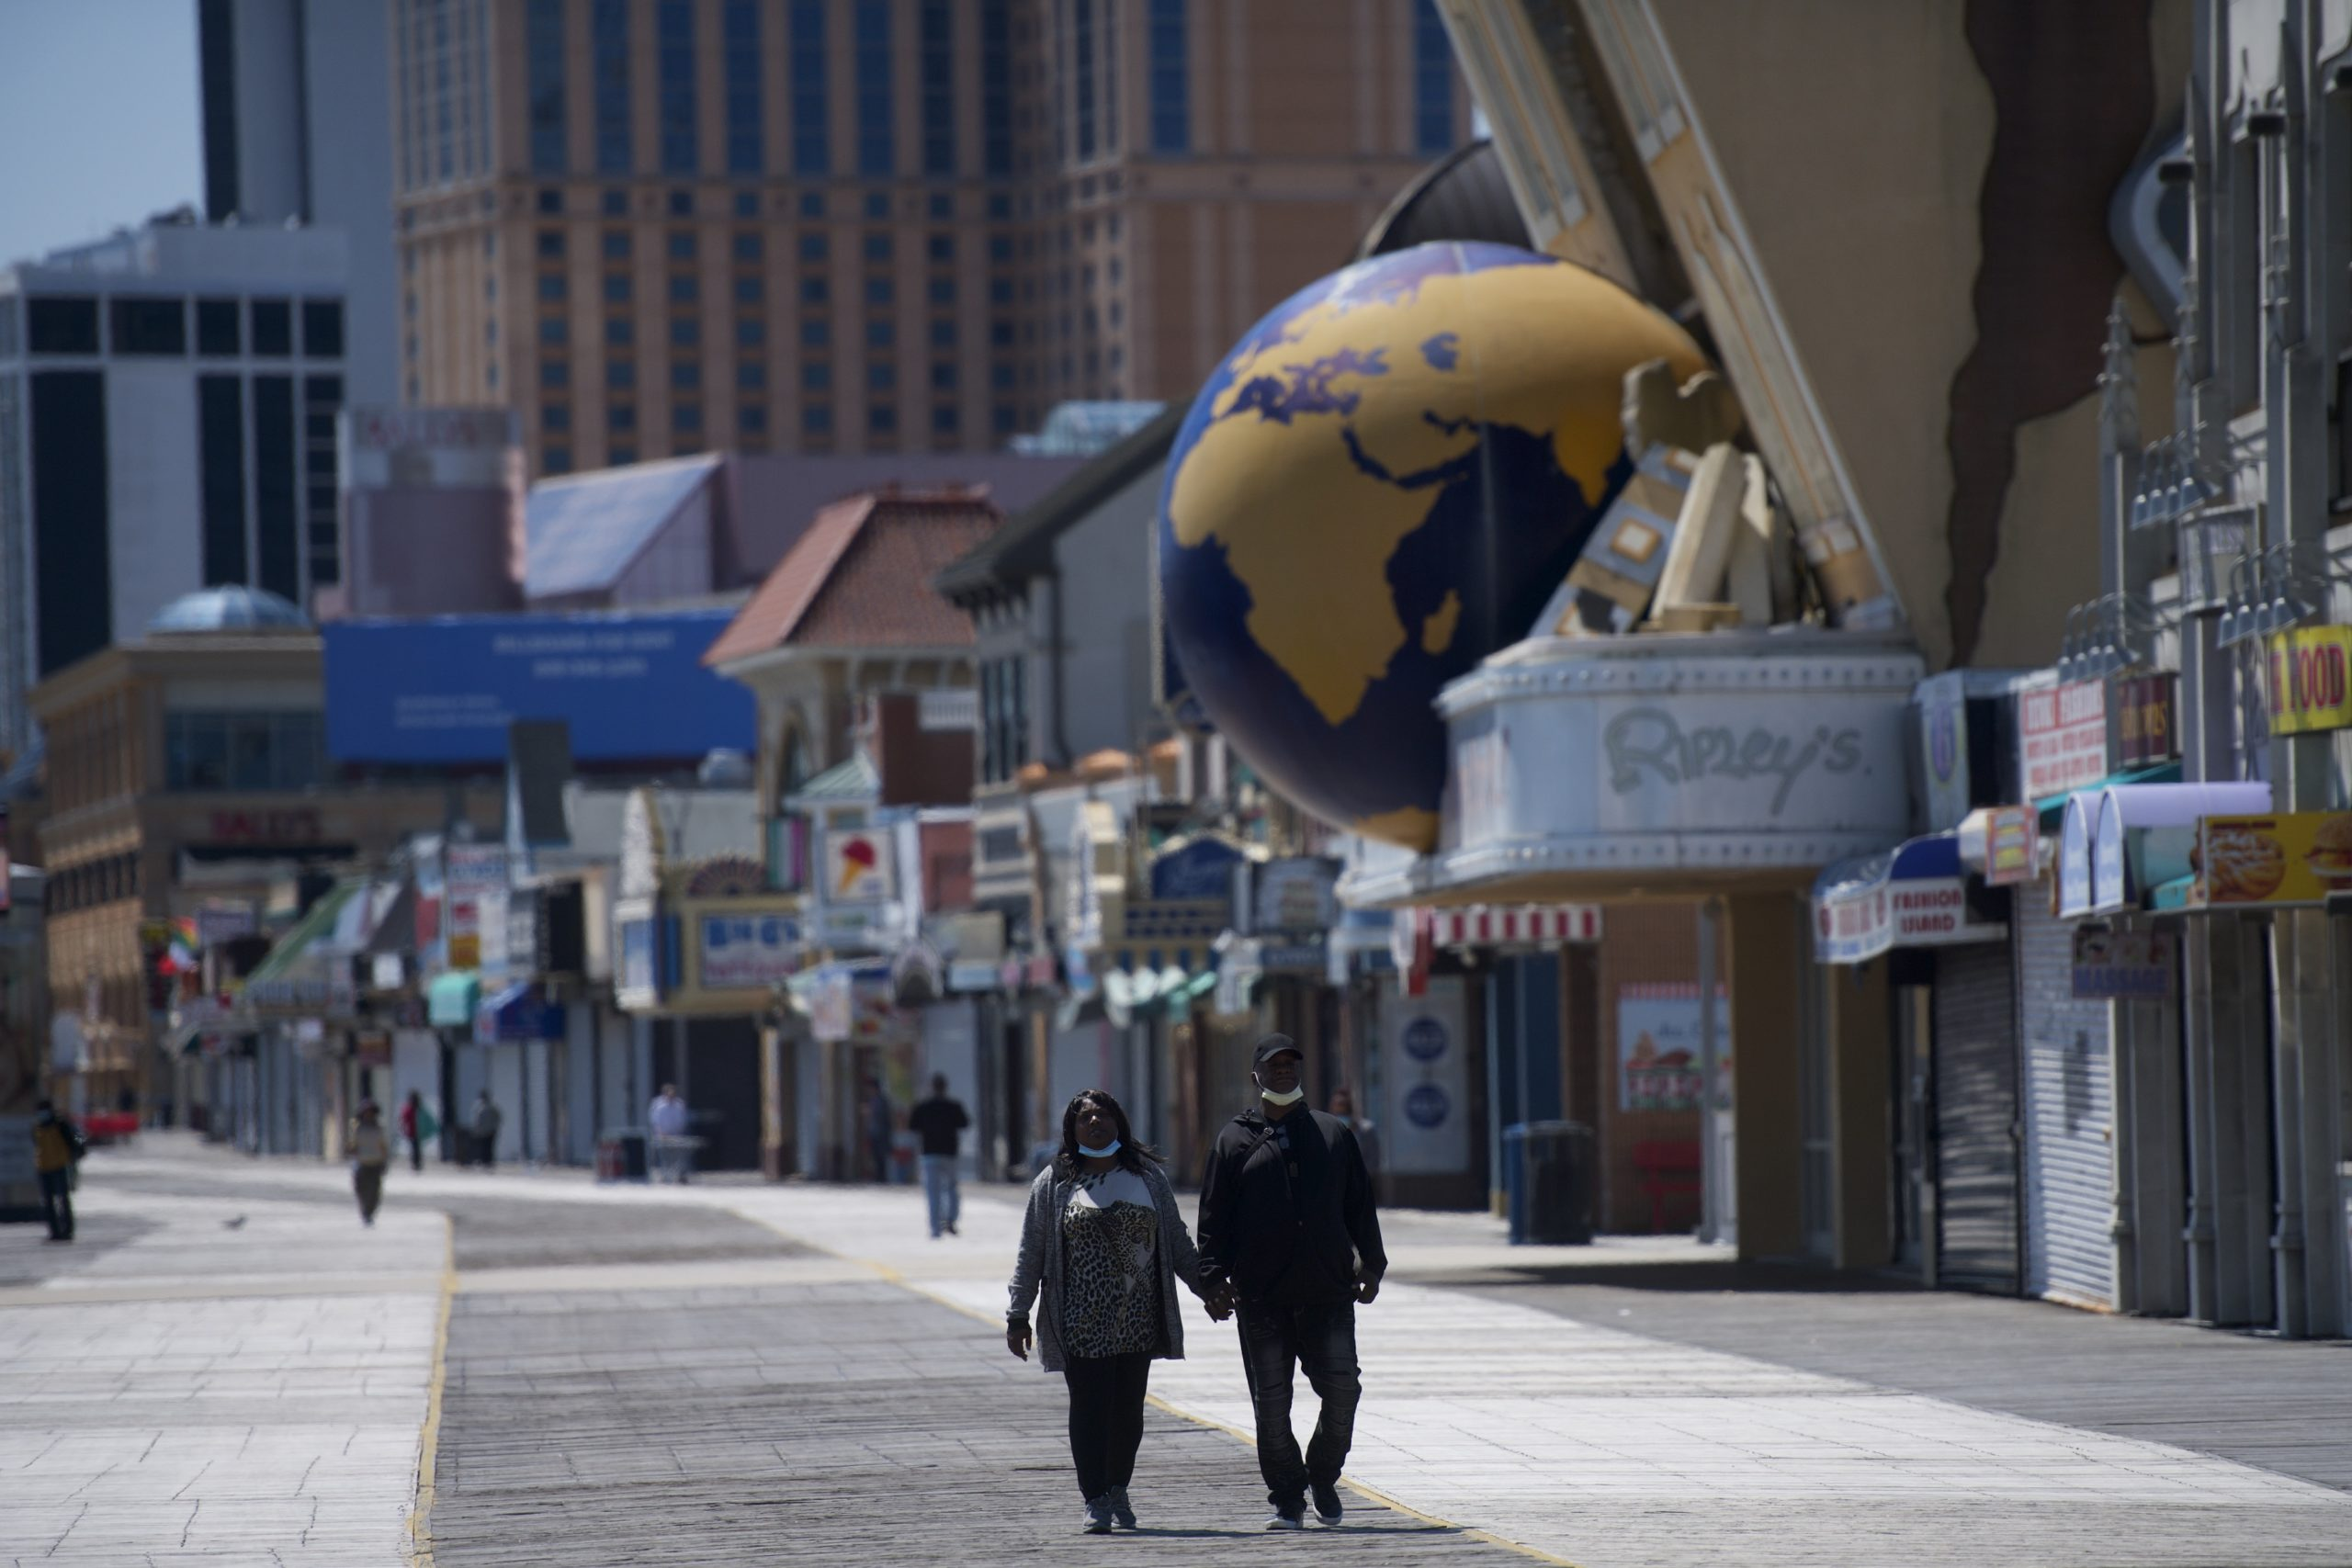 A couple walks on the boardwalk past shuttered stores during the coronavirus pandemic on May 7, 2020 in Atlantic City, New Jersey. (Mark Makela/Getty Images)